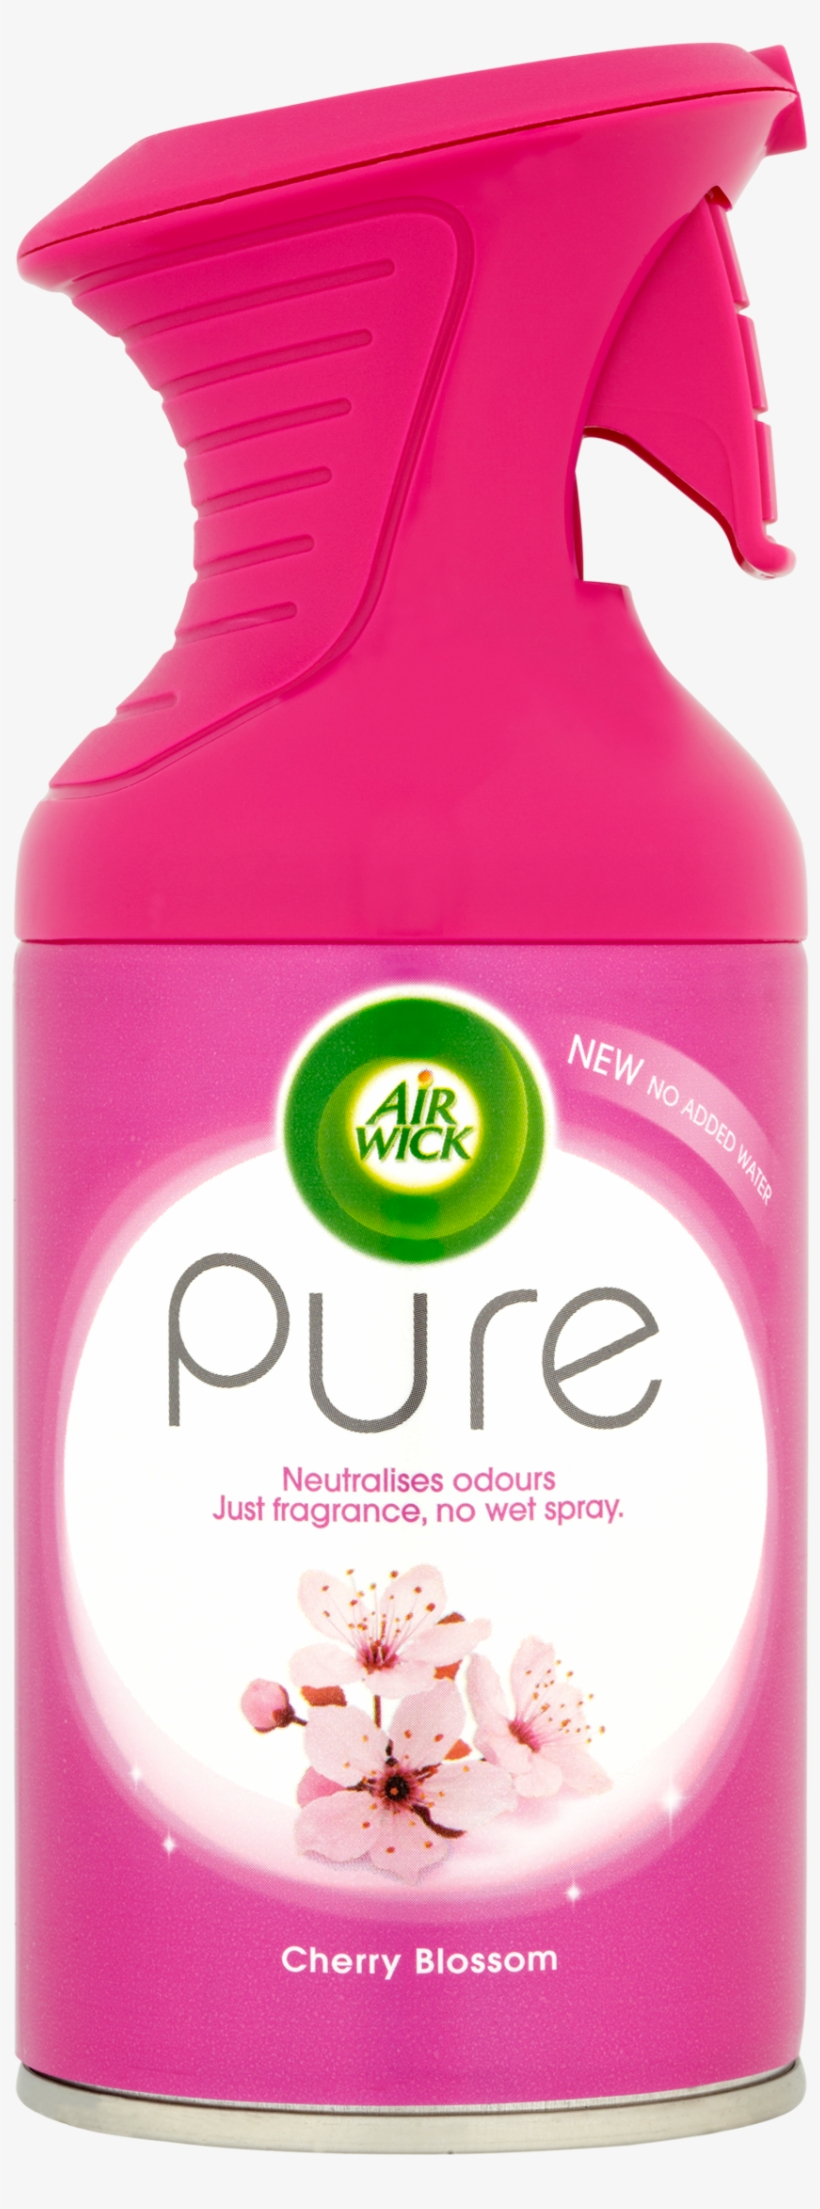 Air Wick Pure Aerosol Cherry Blossom - Air Wick Cherry Blossom, transparent png #78628